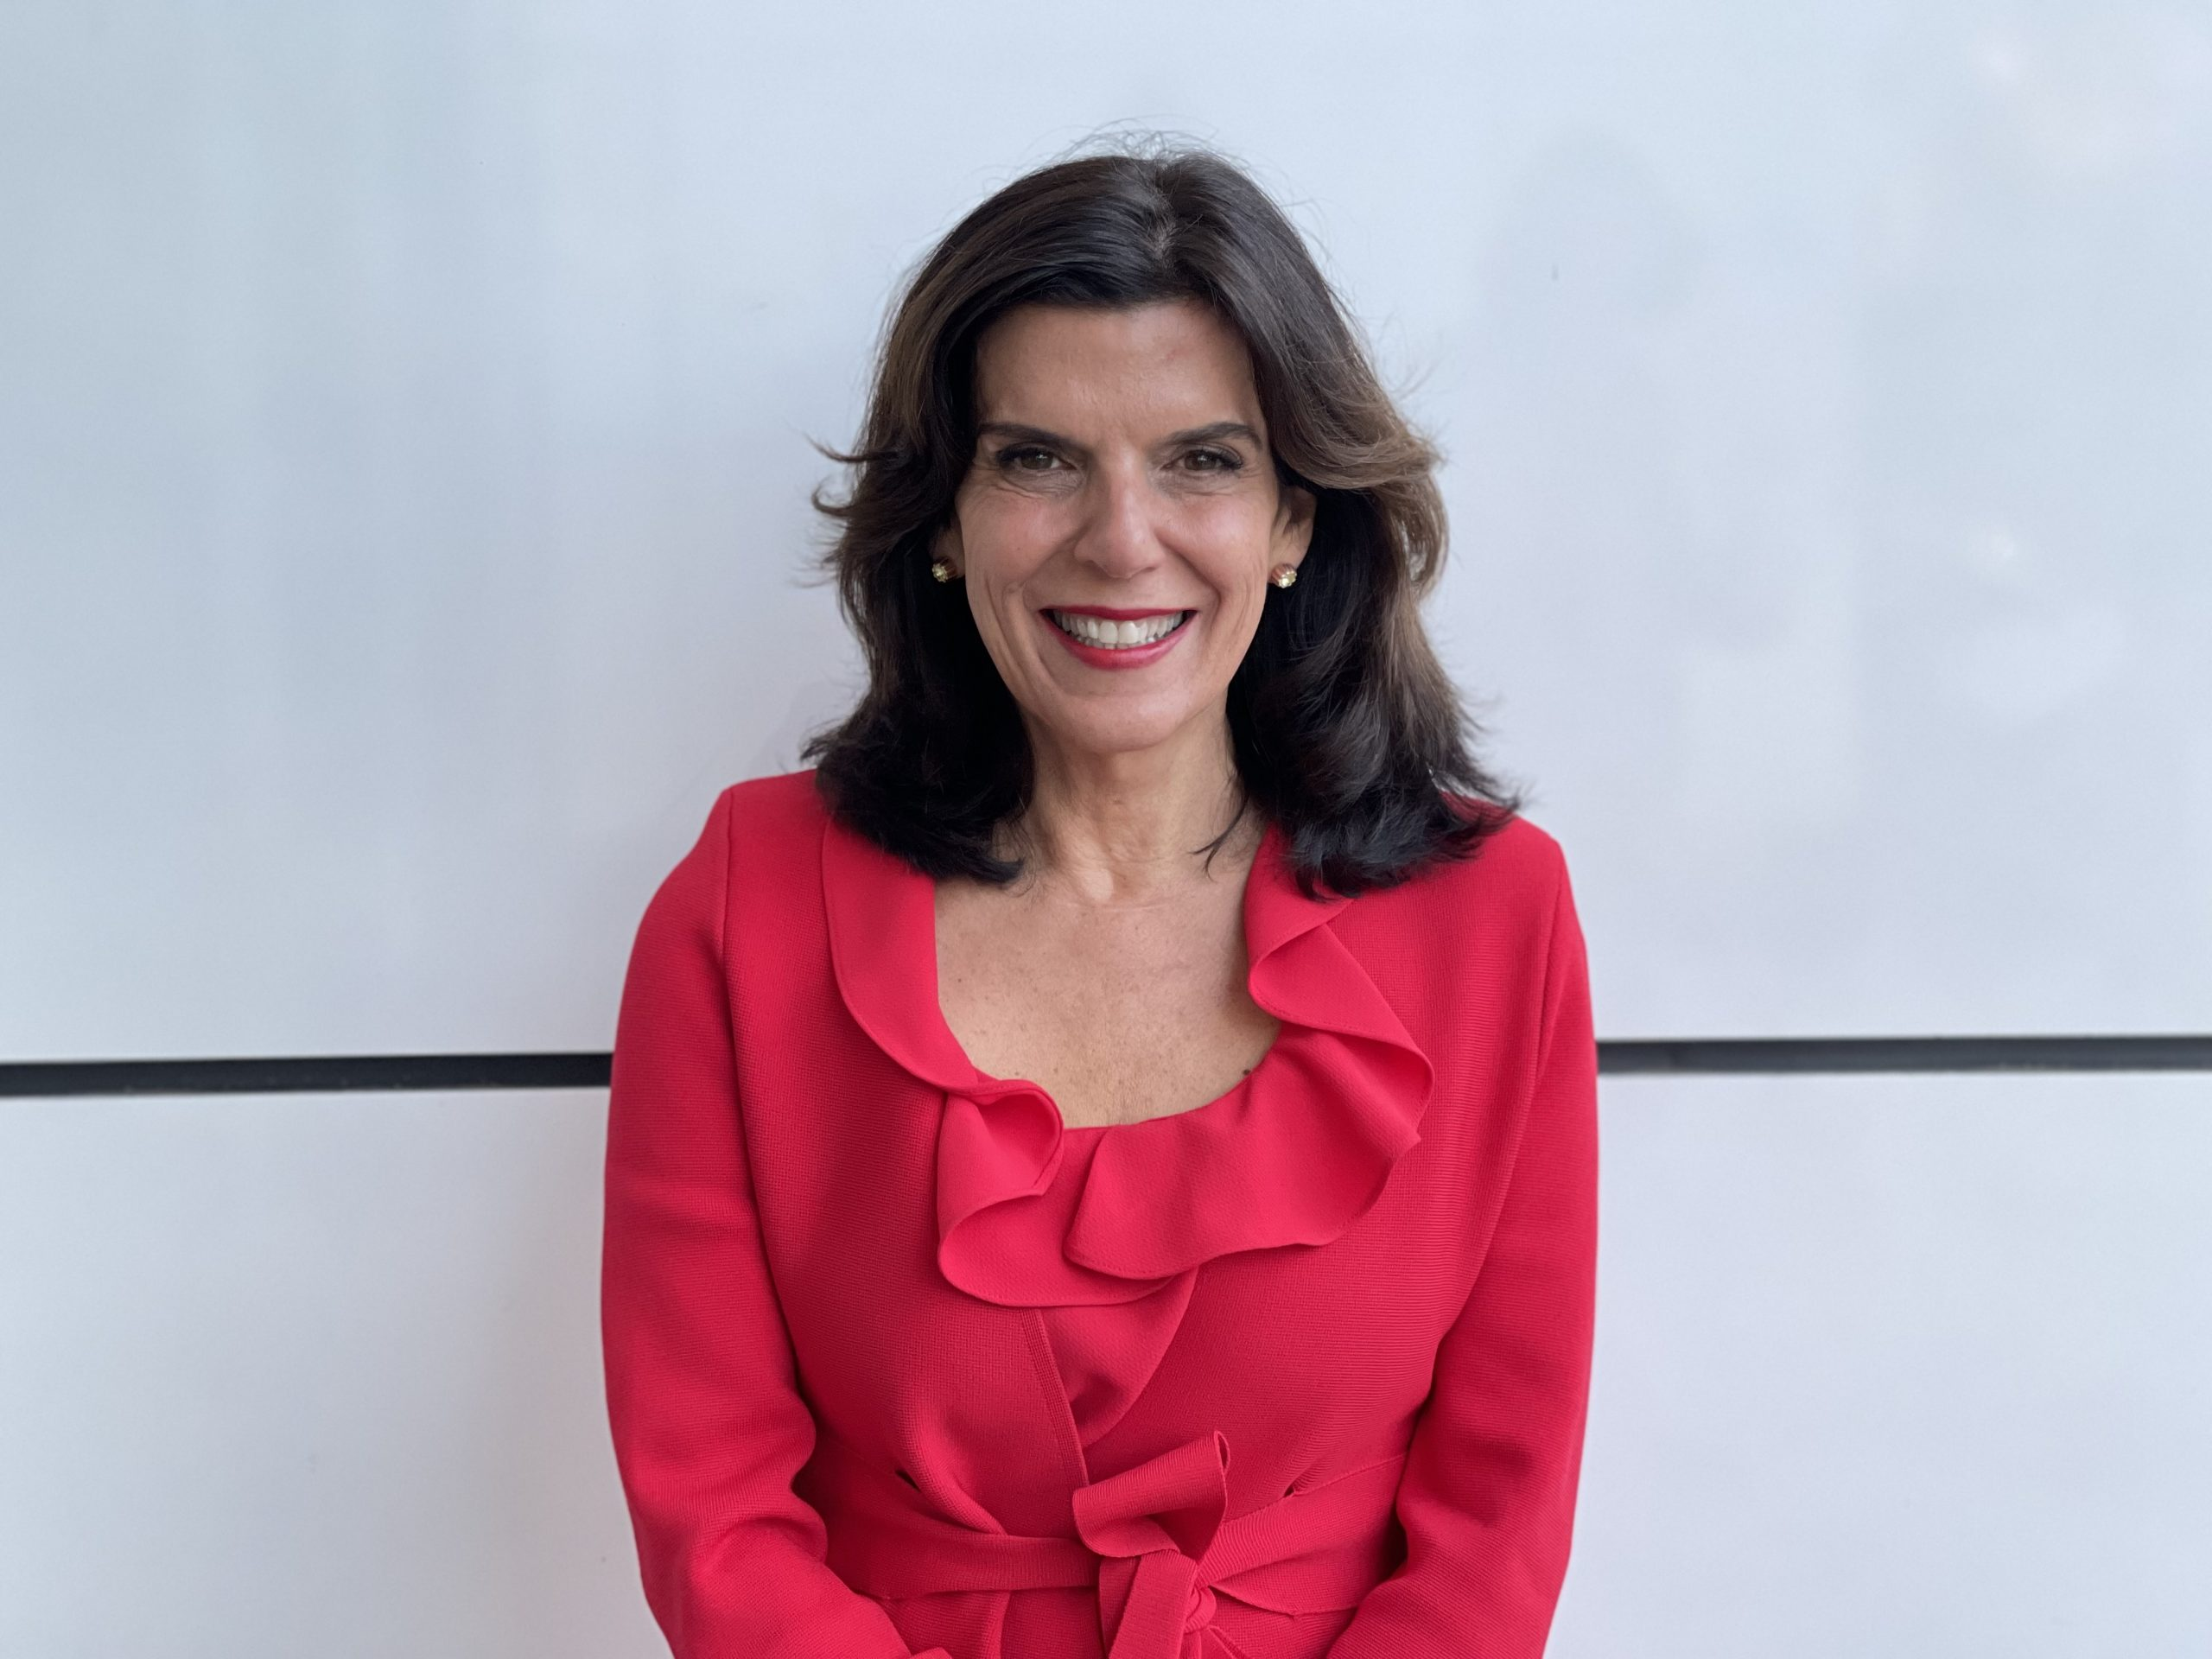 Julia Banks On Navigating Bias and Barriers in Leadership – Episode 63 of The Grace Tales Podcast